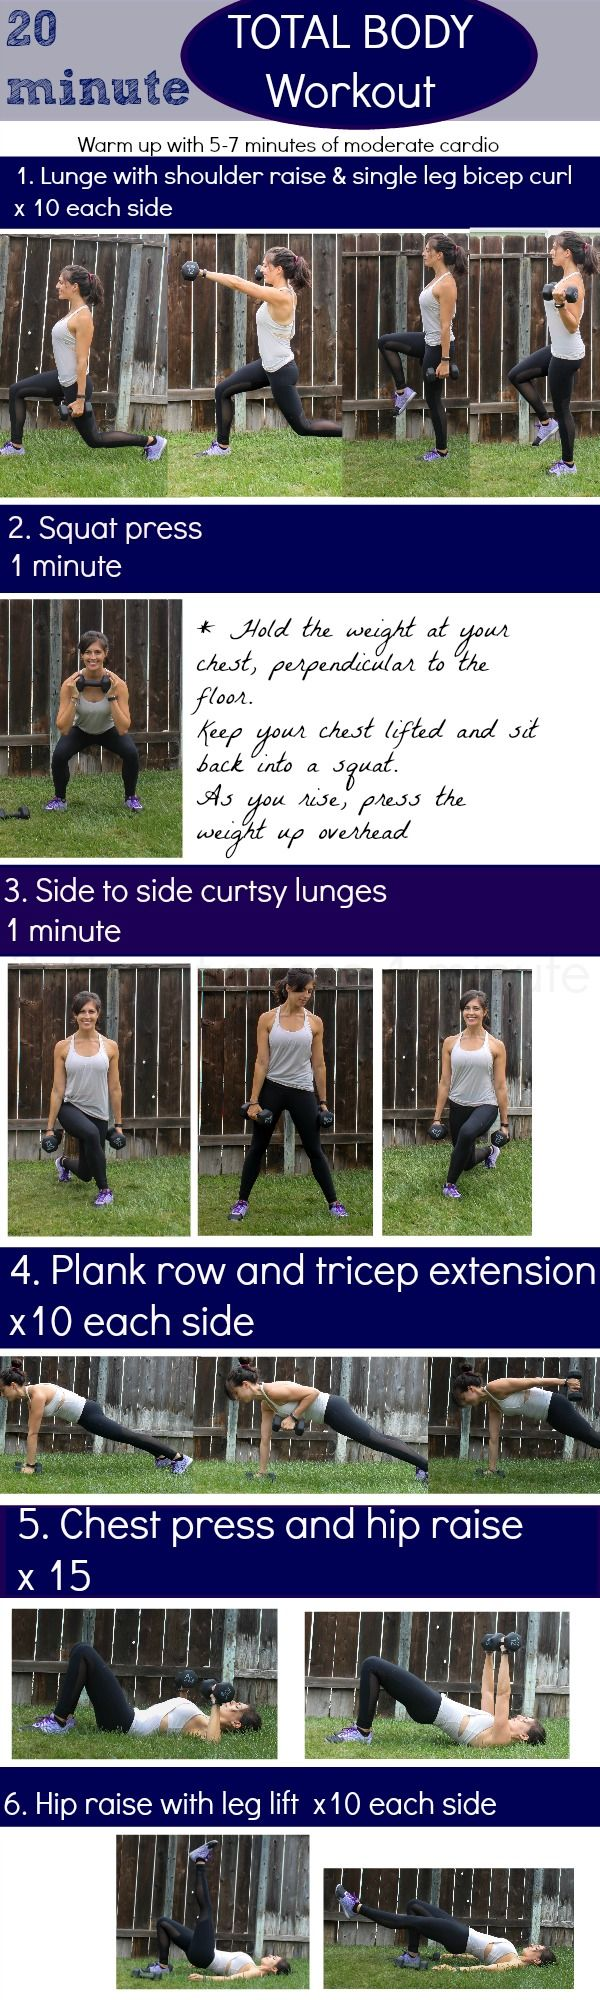 20-minute head to toe workout - The Fitnessista